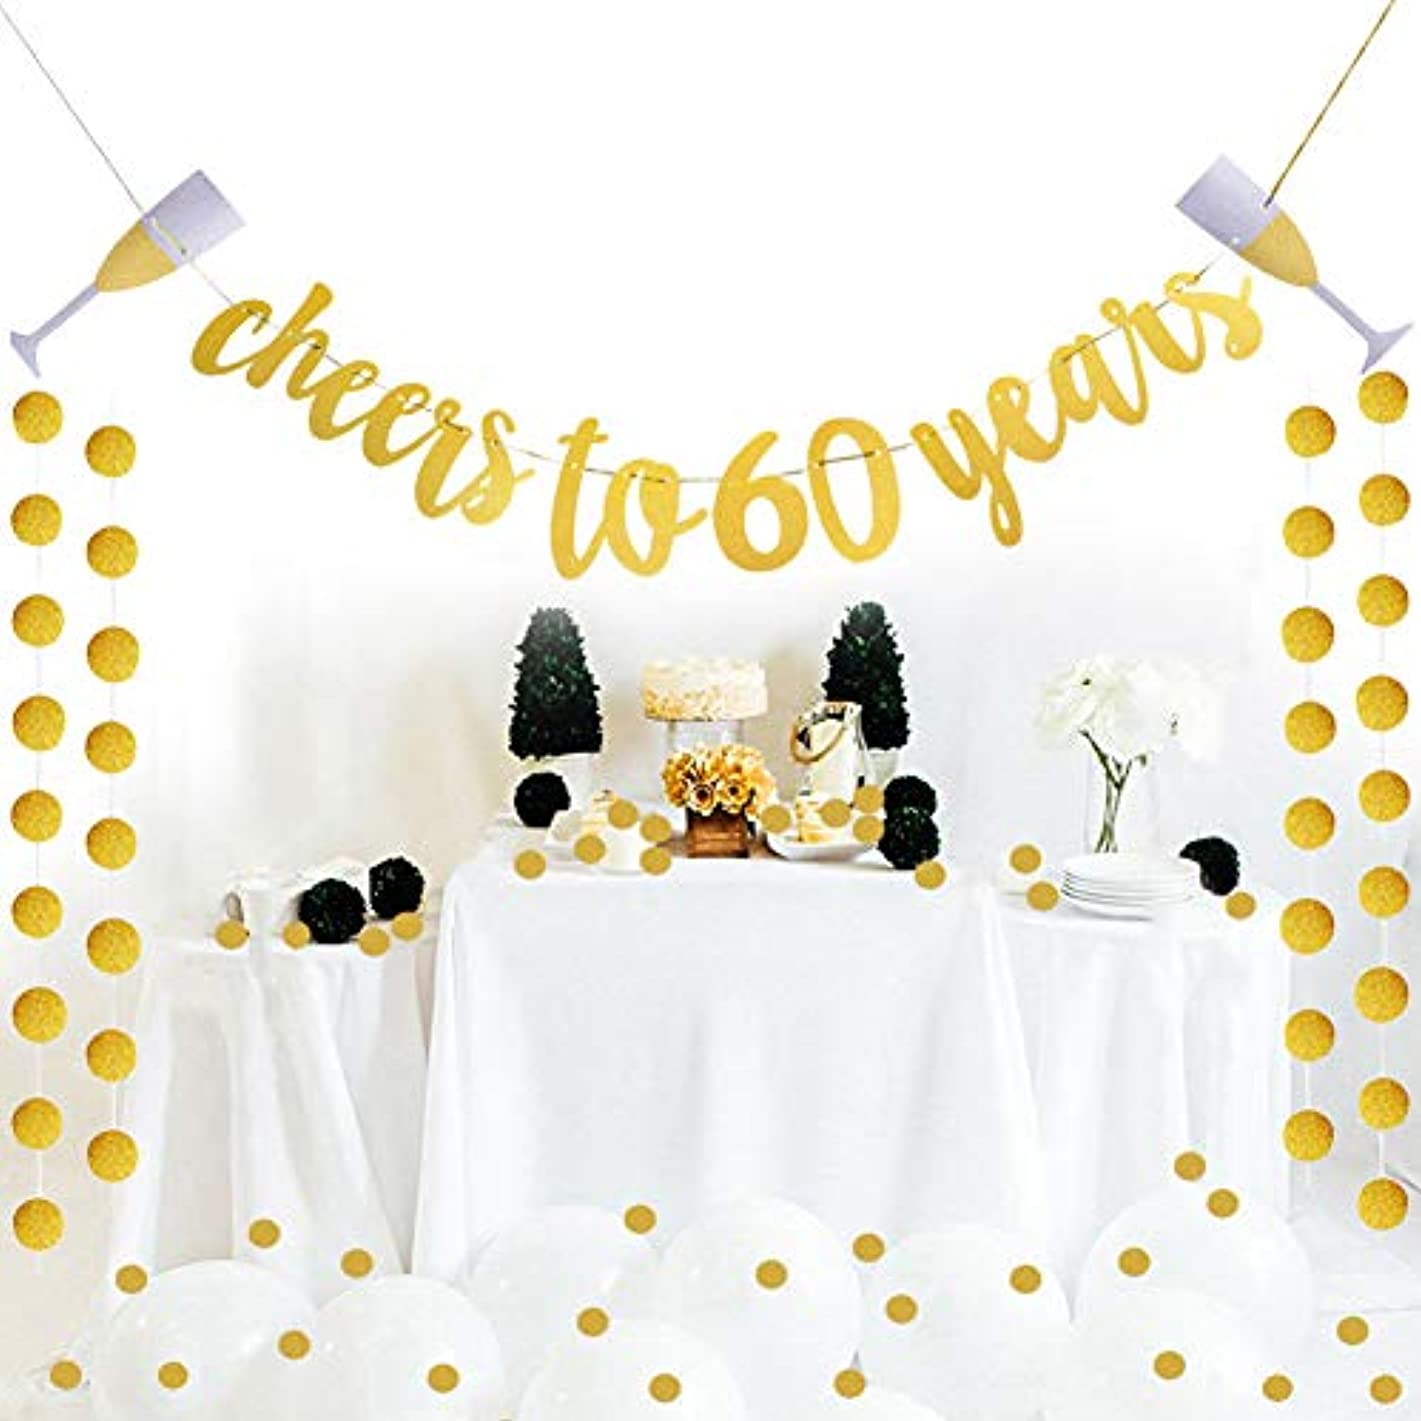 Threemart Glittery Gold Cheers to 60 Years Banner for 60th Birthday Wedding Anniversary Party Decoration